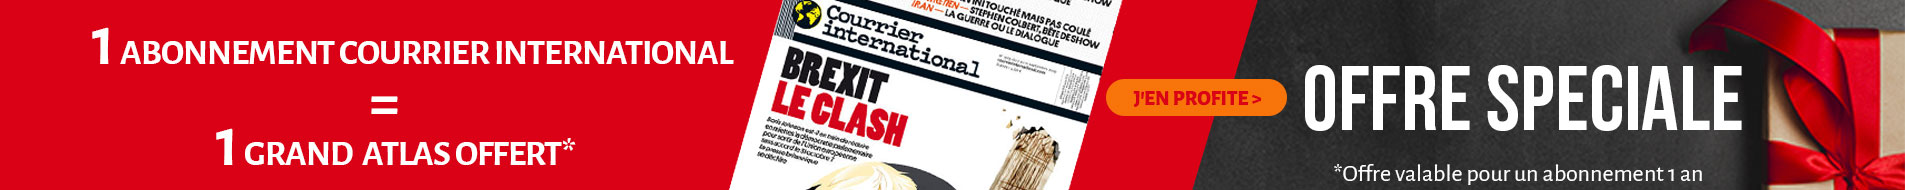 Offre speciale courrier international